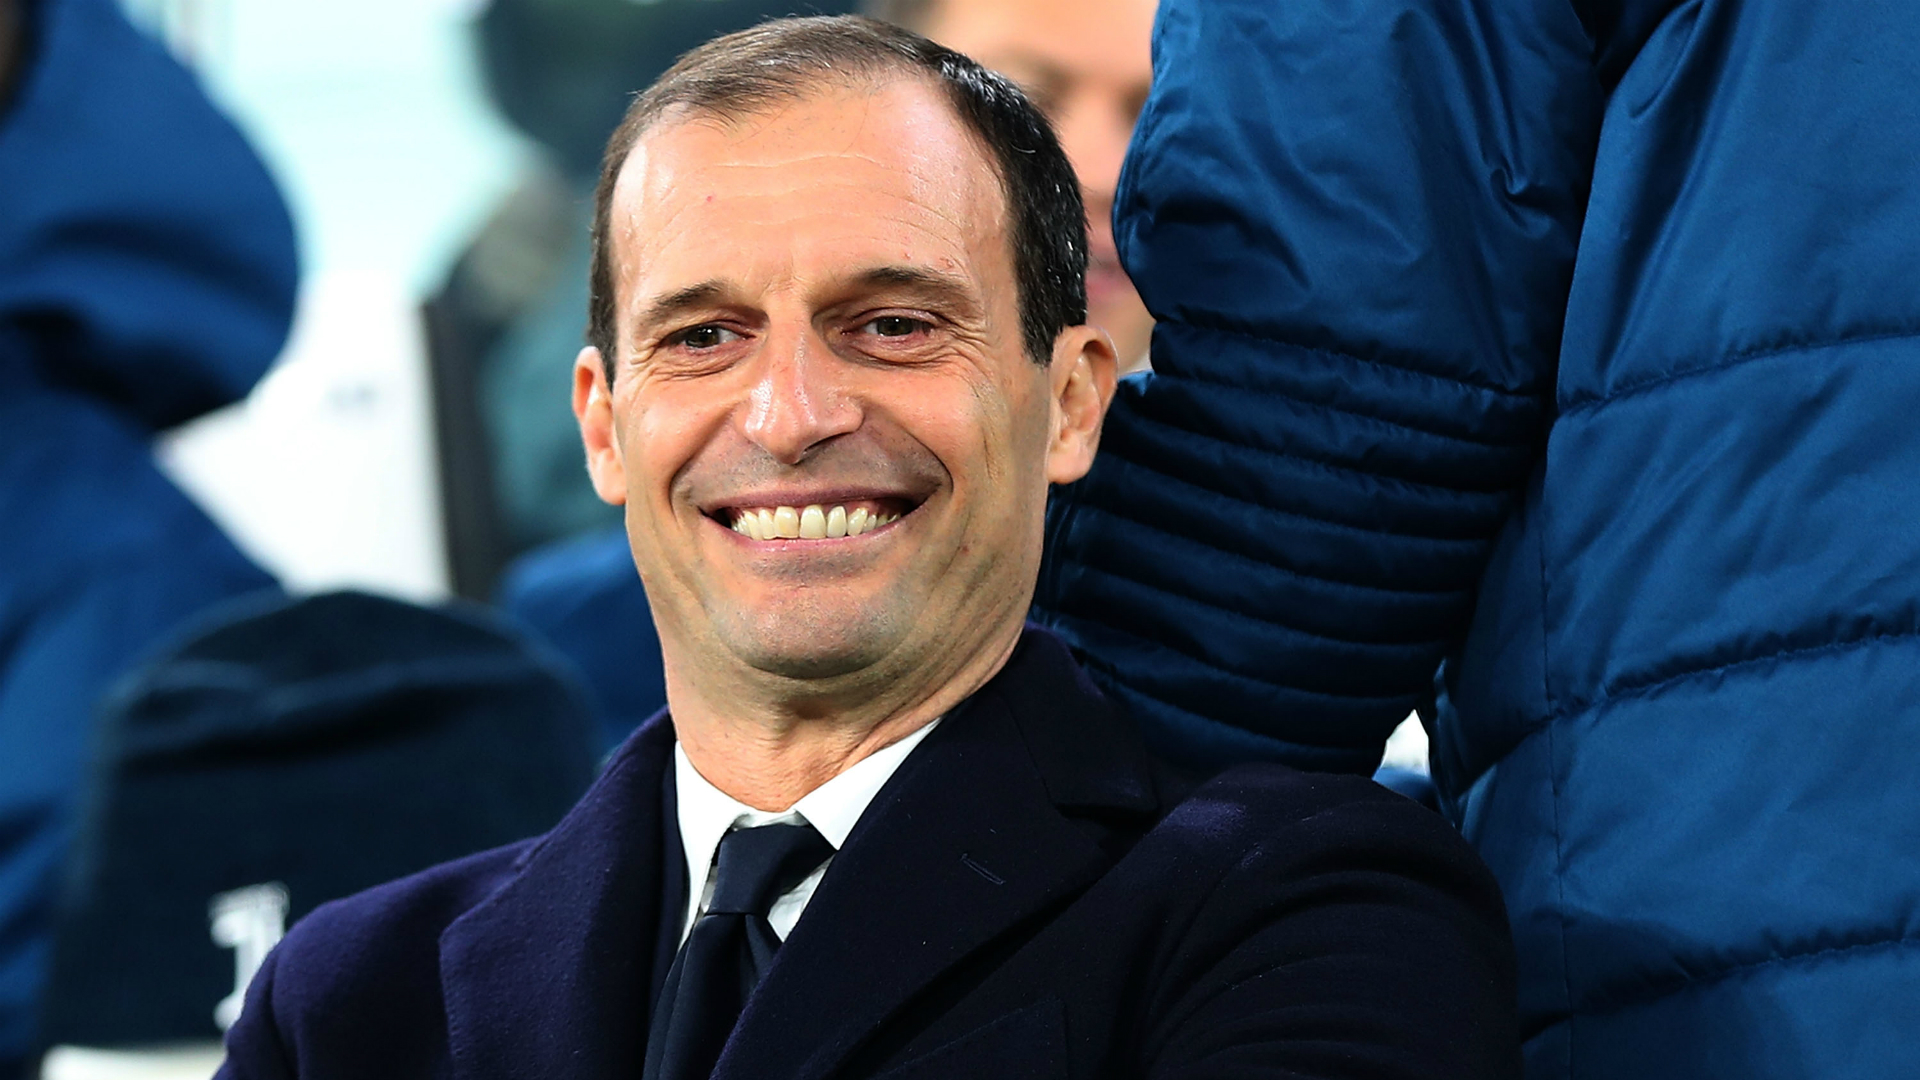 Allegri ignoring Arsenal talk as he puts Juventus future thoughts on hold